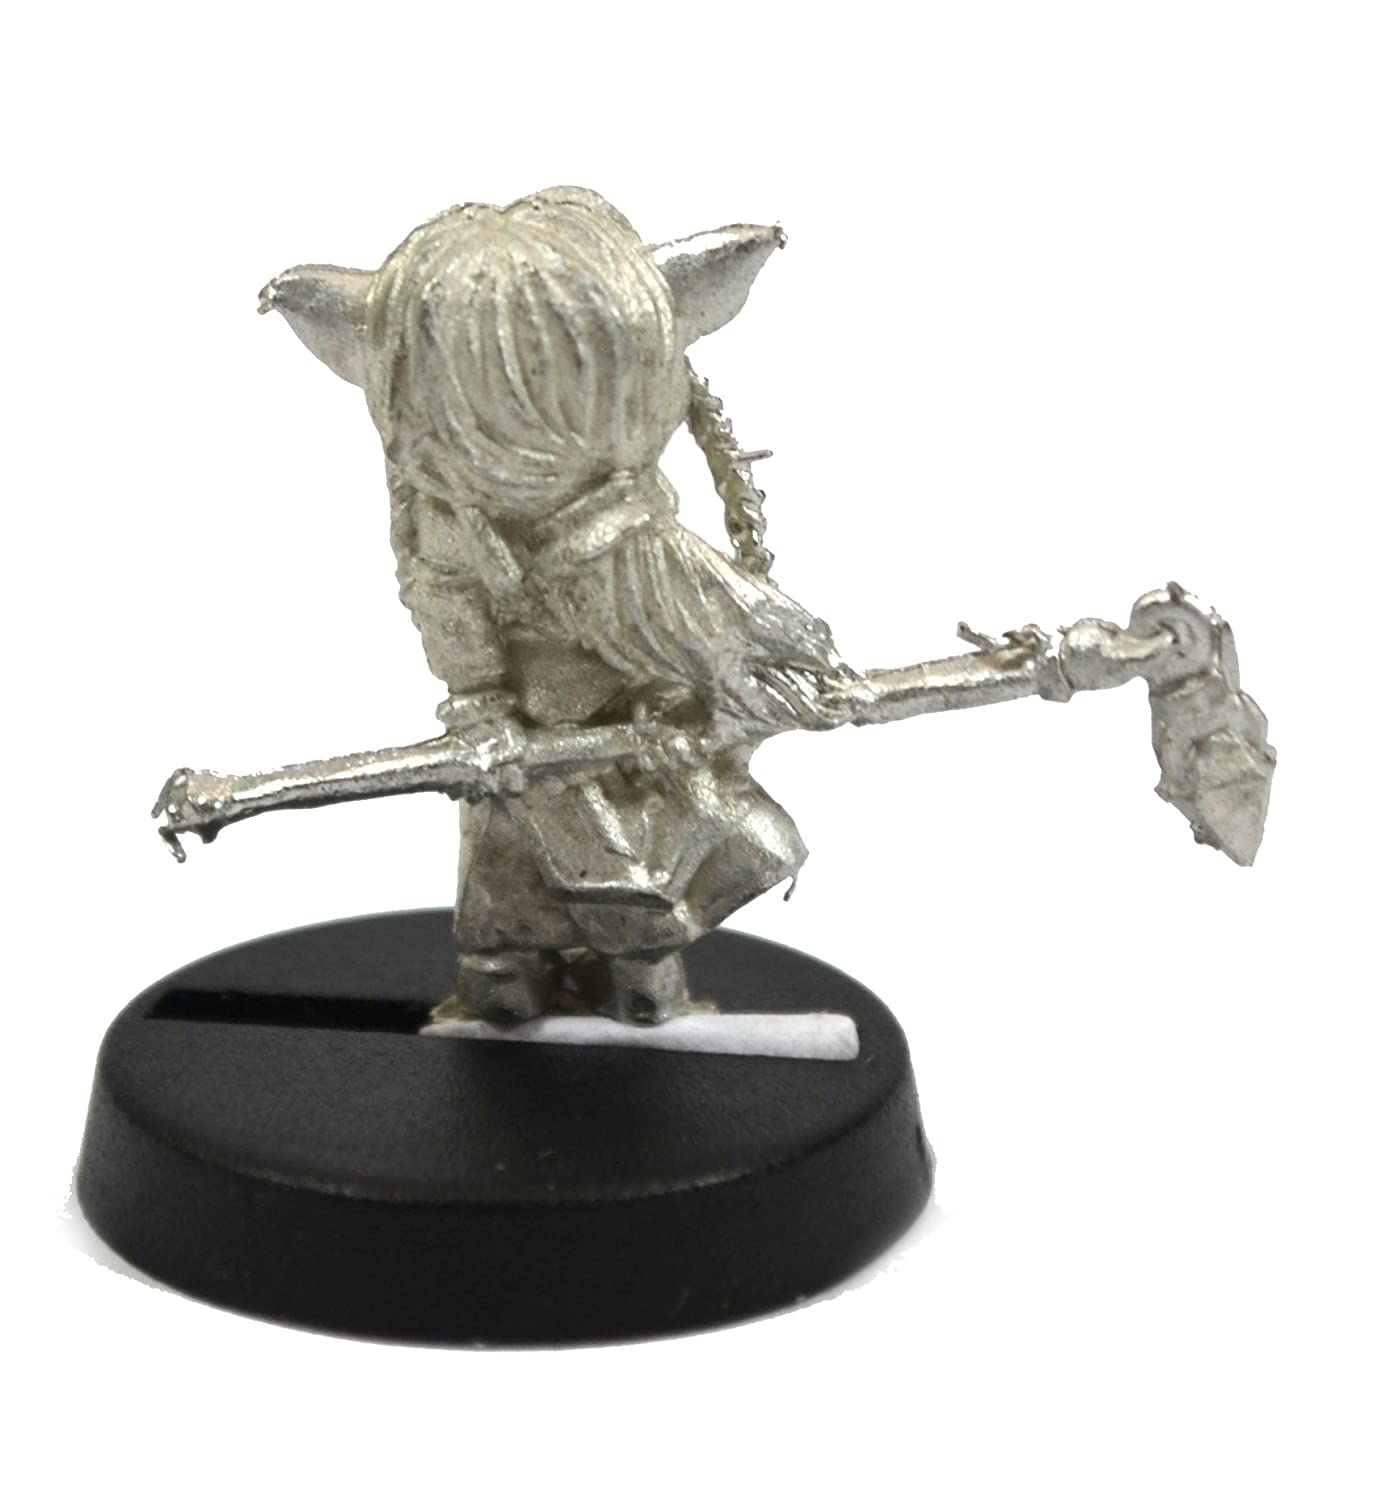 Stonehaven Gnome Cleric Miniature Figure for 28mm Scale Table Top War Games Made in USA Stonehaven Miniatures